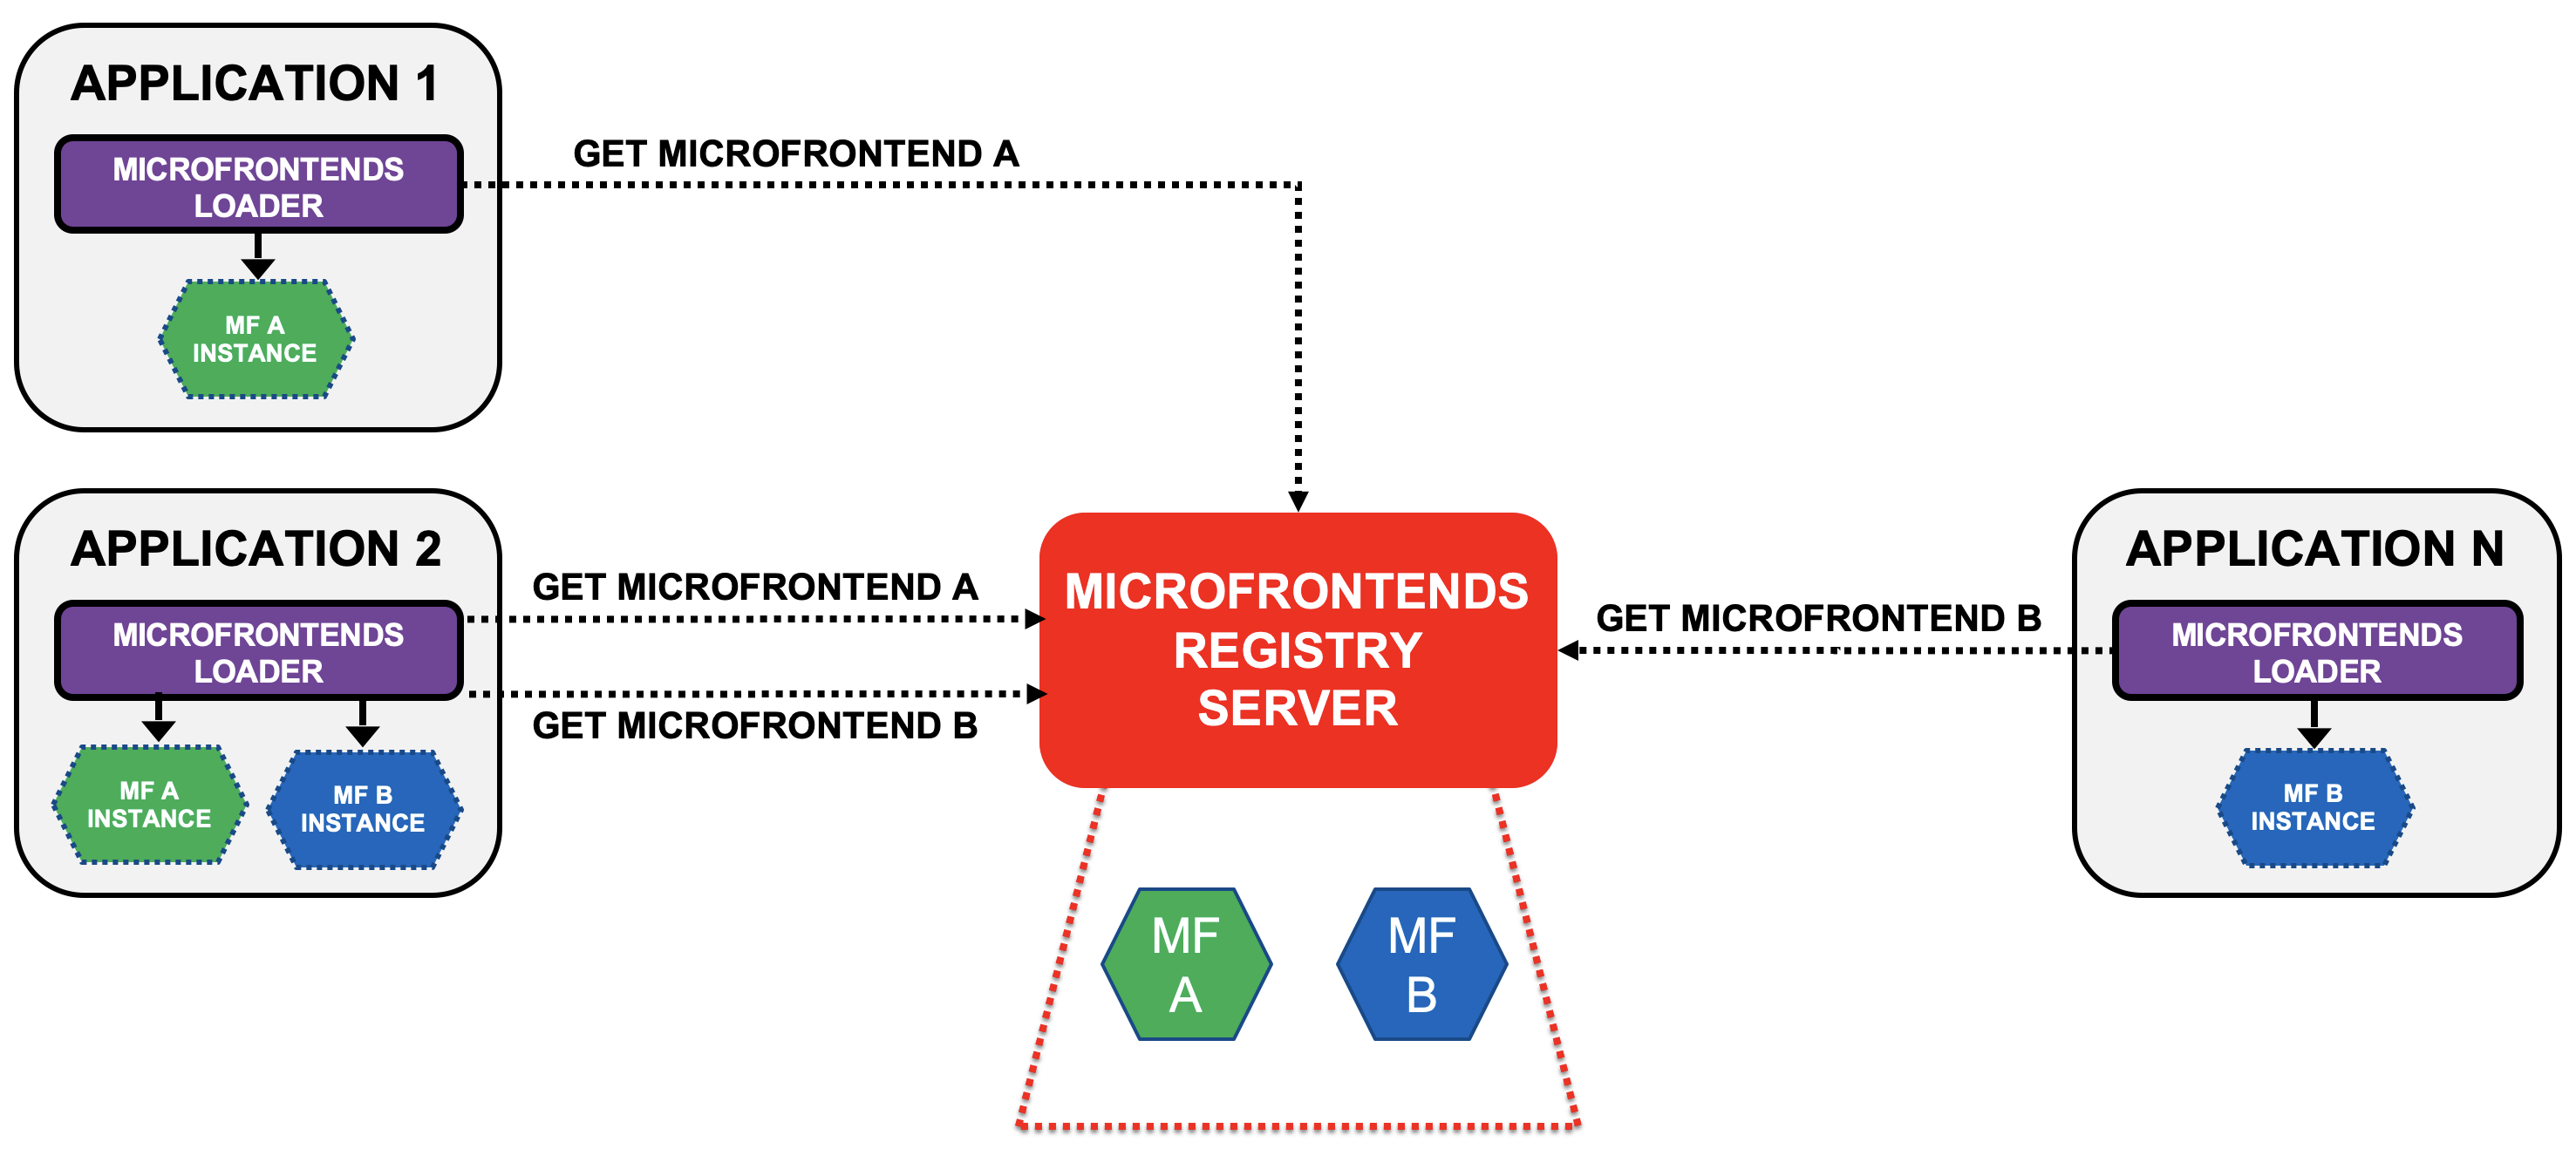 microfrontends loader